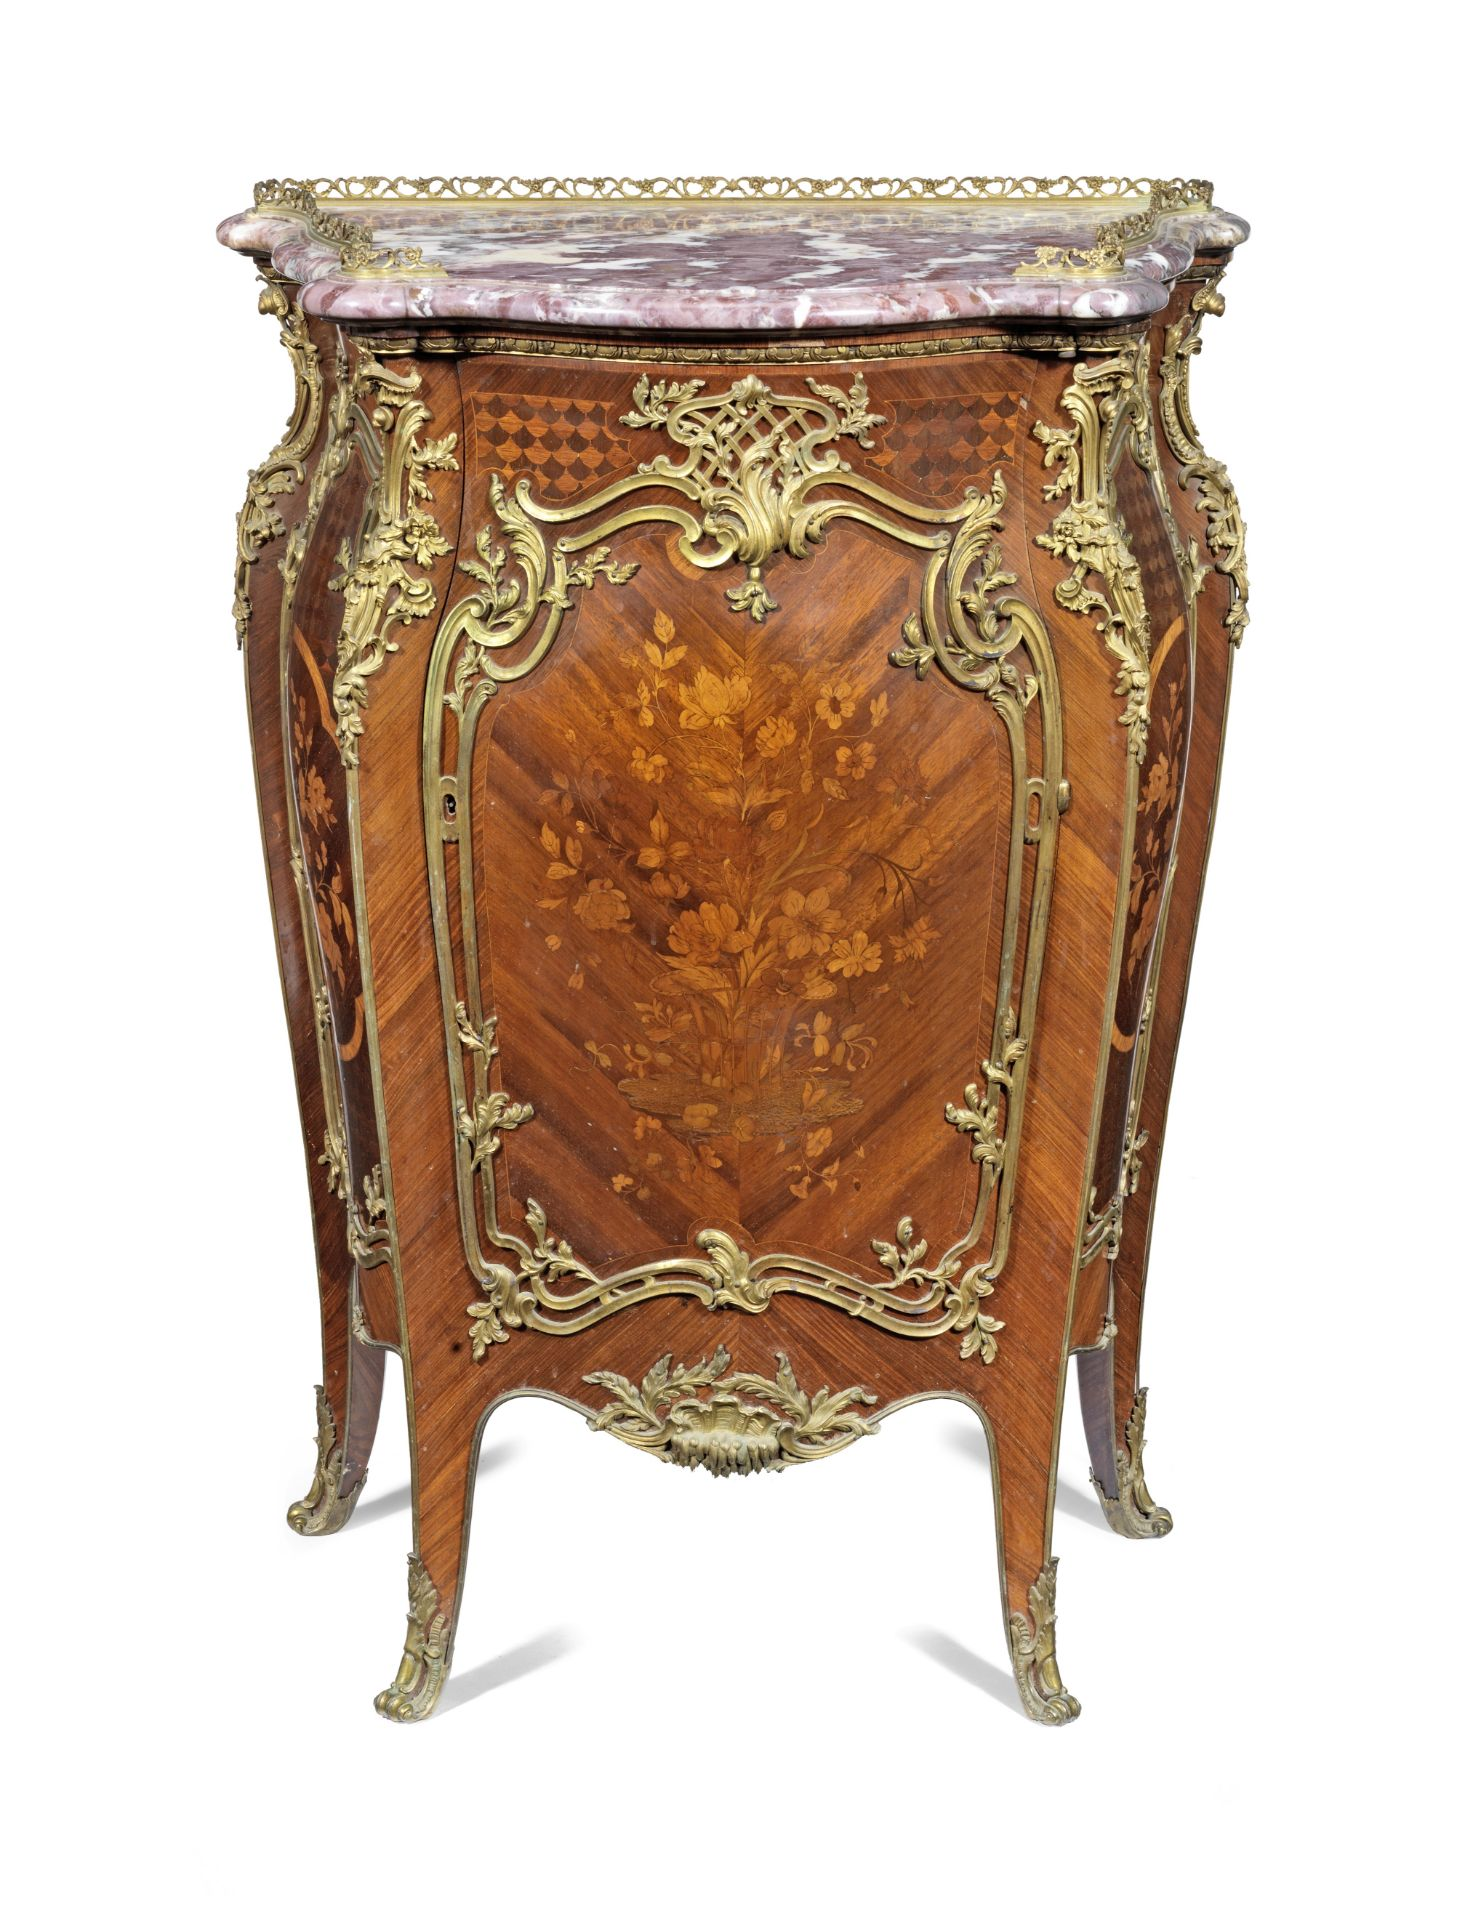 A French late 19th century ormolu mounted kingwood, bois satine, amaranth, marquetry and parquetr...